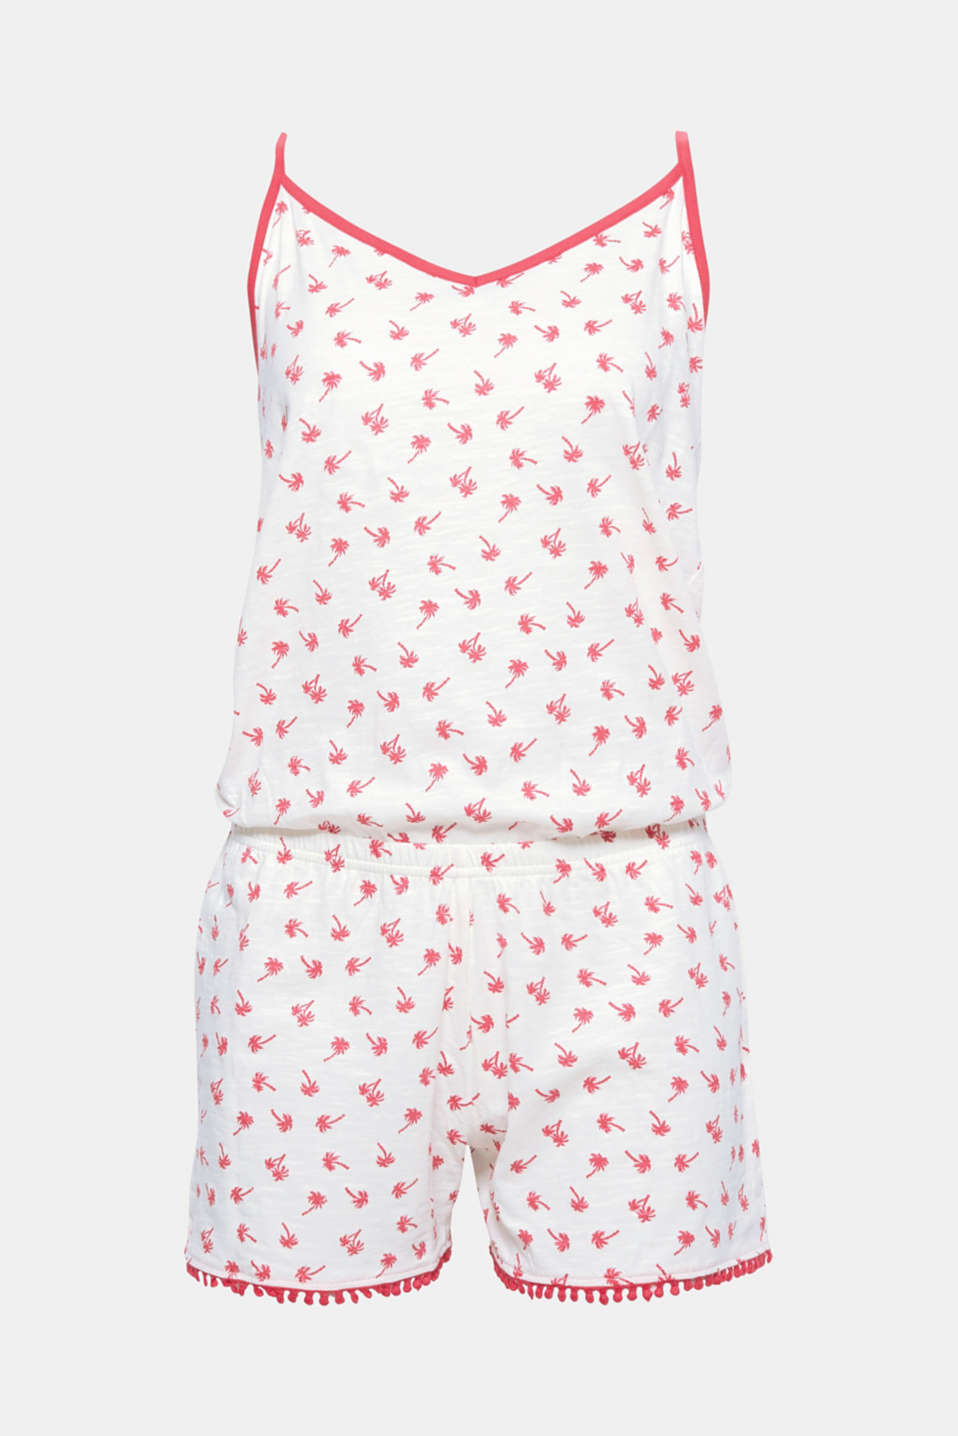 This airy textured slub jersey jumpsuit with a pretty palm print and polka dot borders comes in a super summery style!